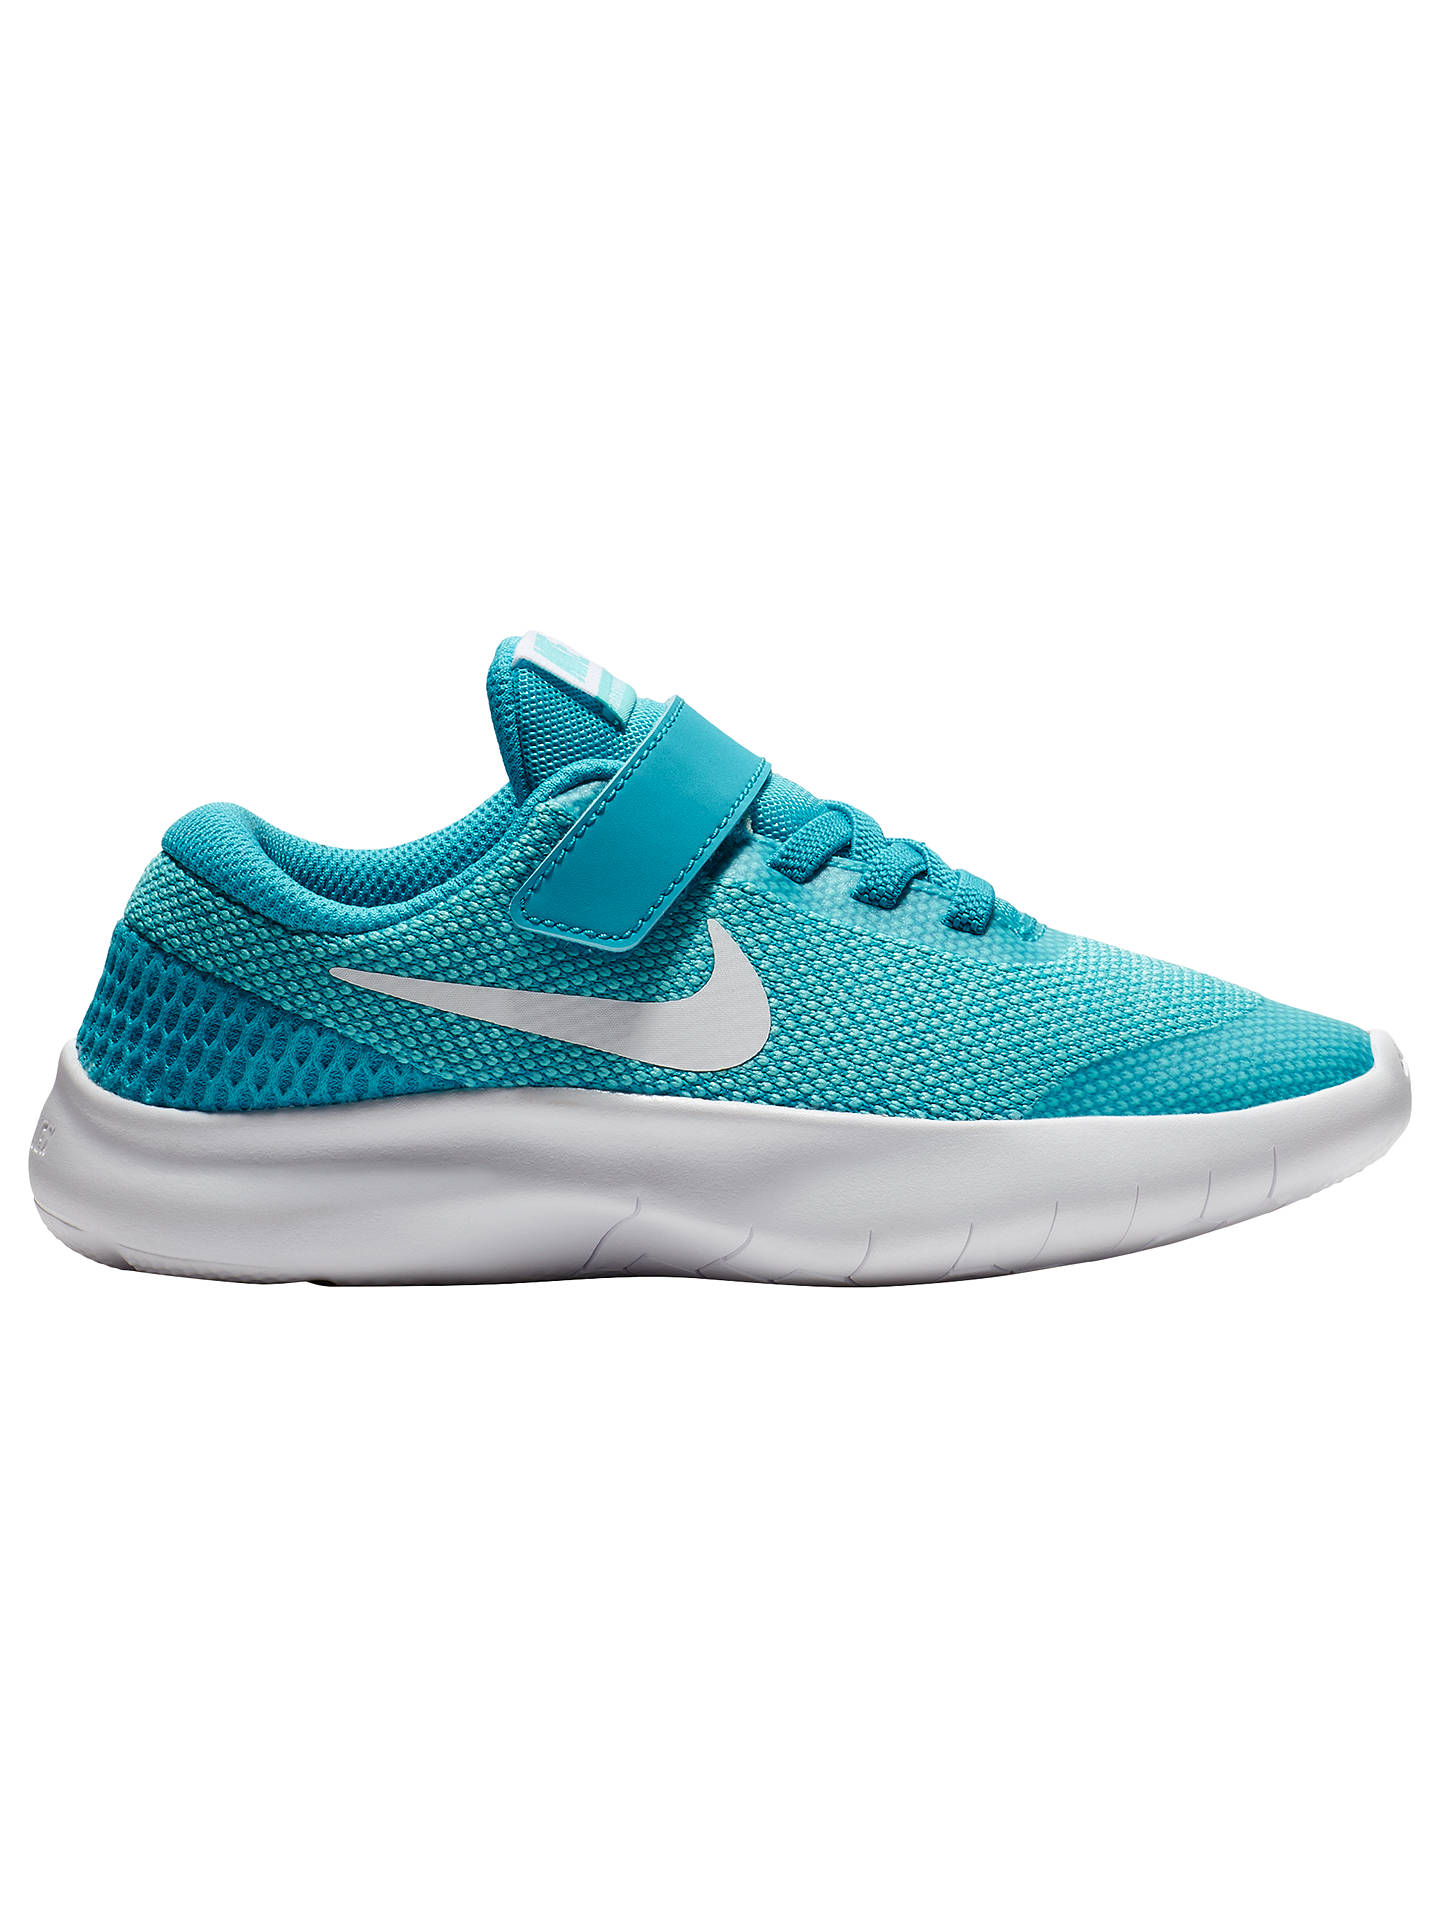 0d26814c81423 Nike Children s Flex Experience Run 7 PS Trainers at John Lewis ...